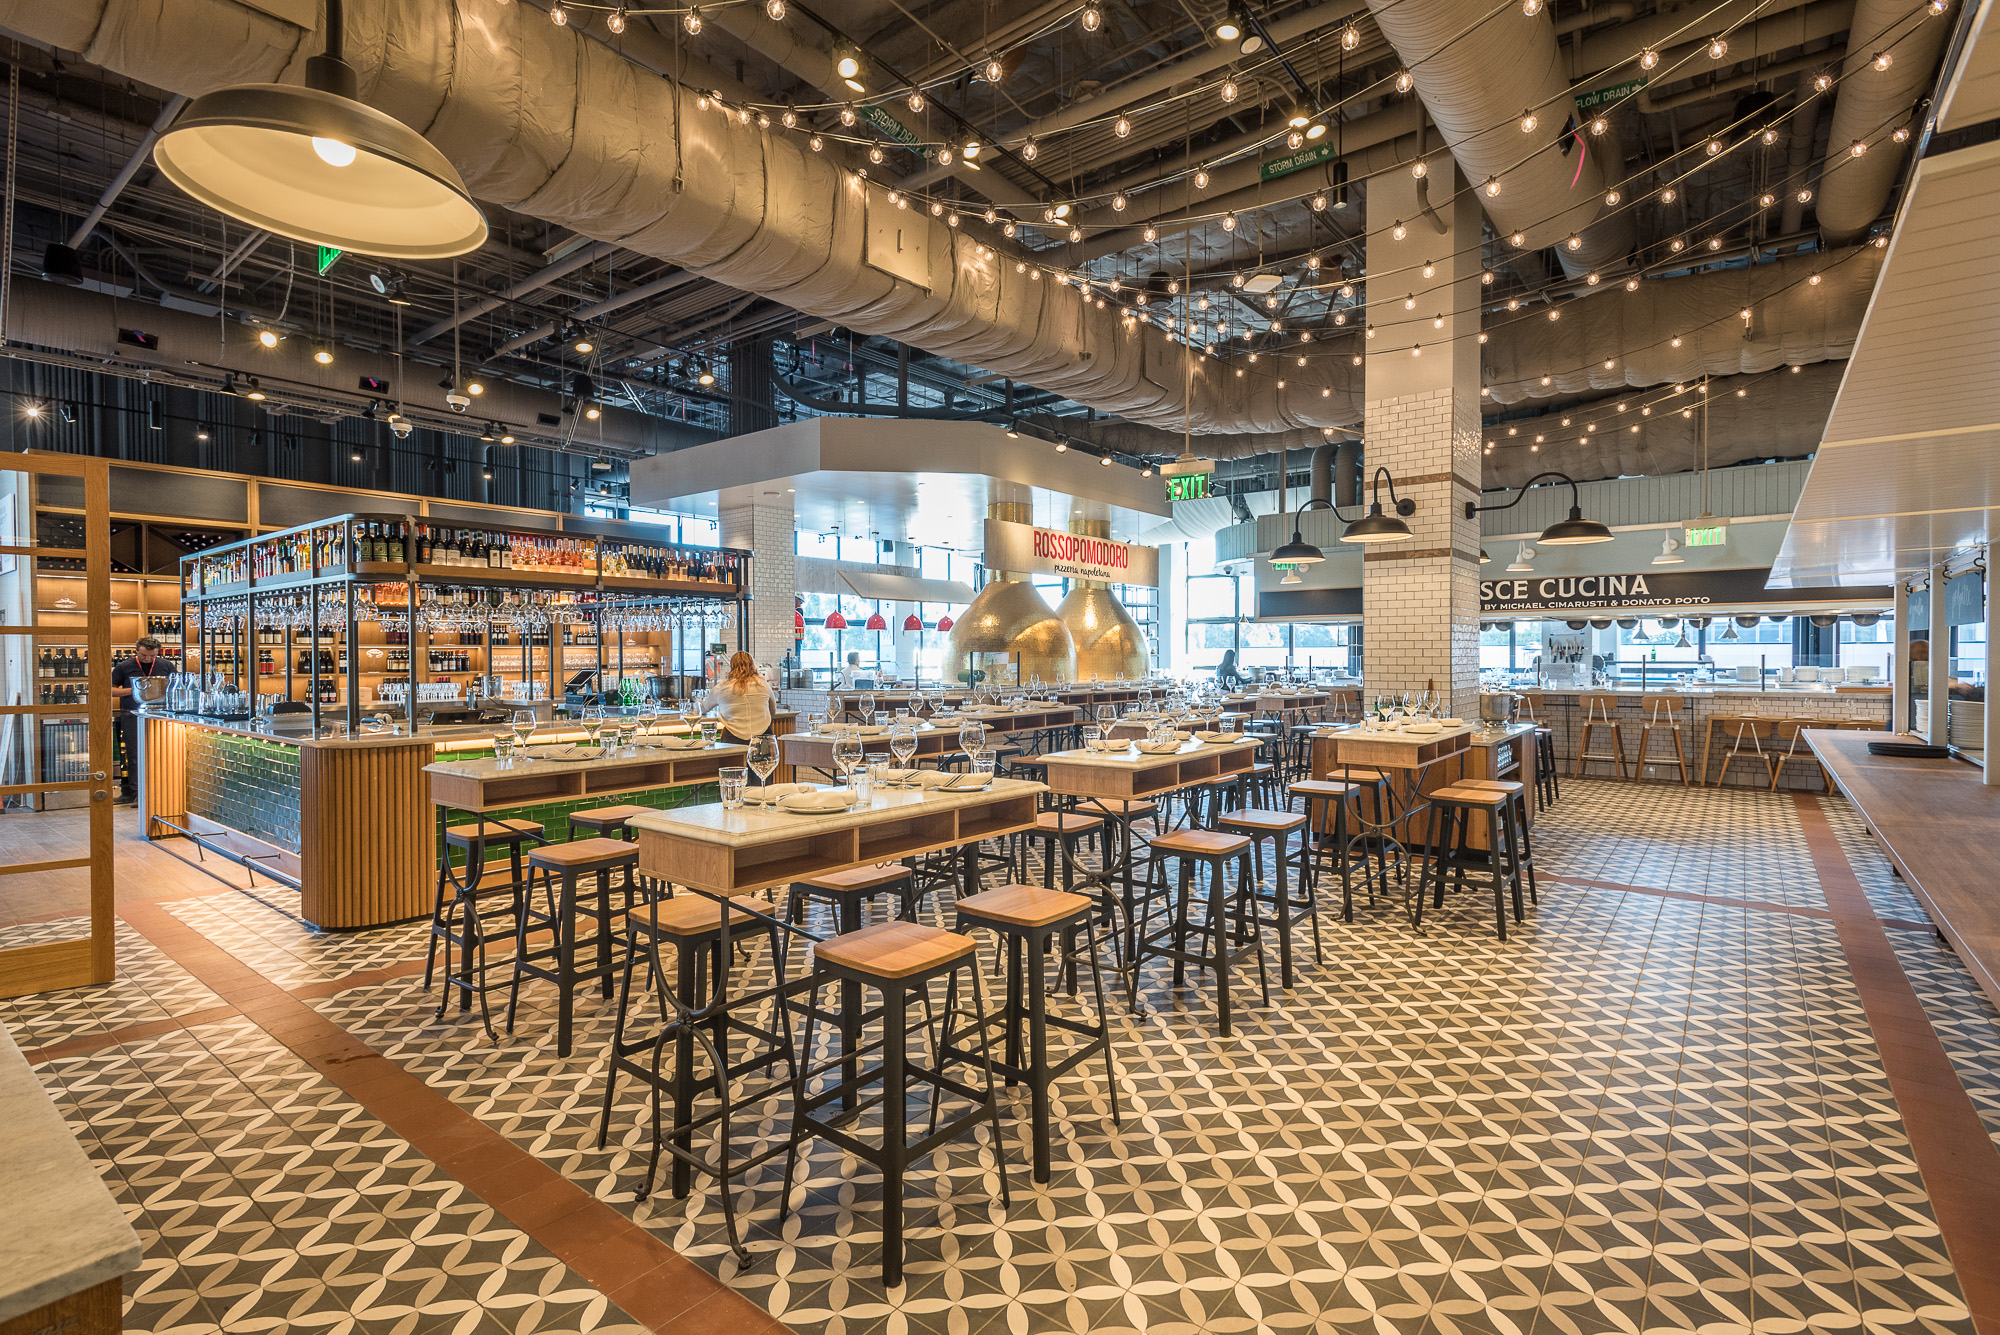 Eataly's Rooftop Restaurant With a Wood-Burning Grill Opens This Month